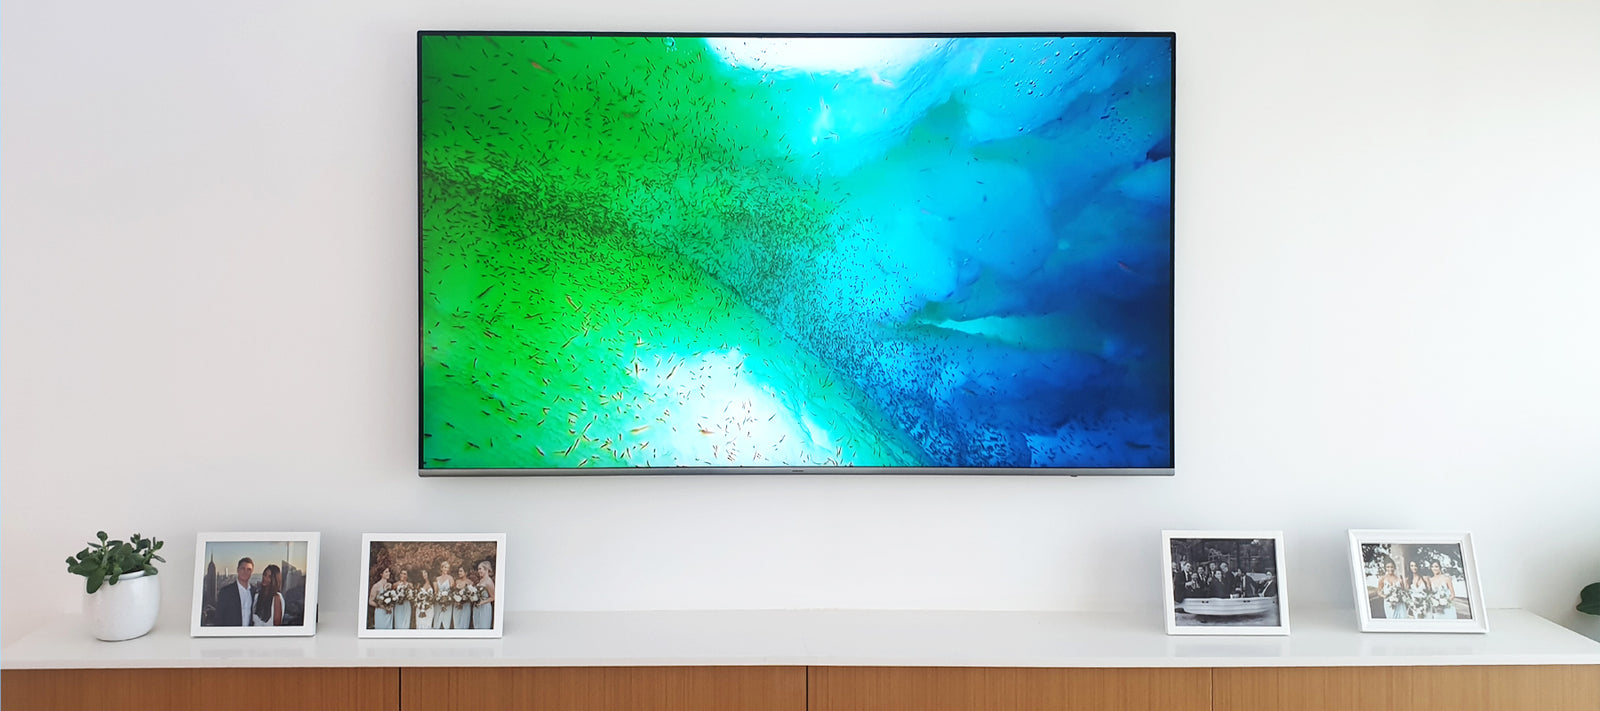 How To Wall Mount A Tv Without Cables Showing Intelligent Home Technology Centre